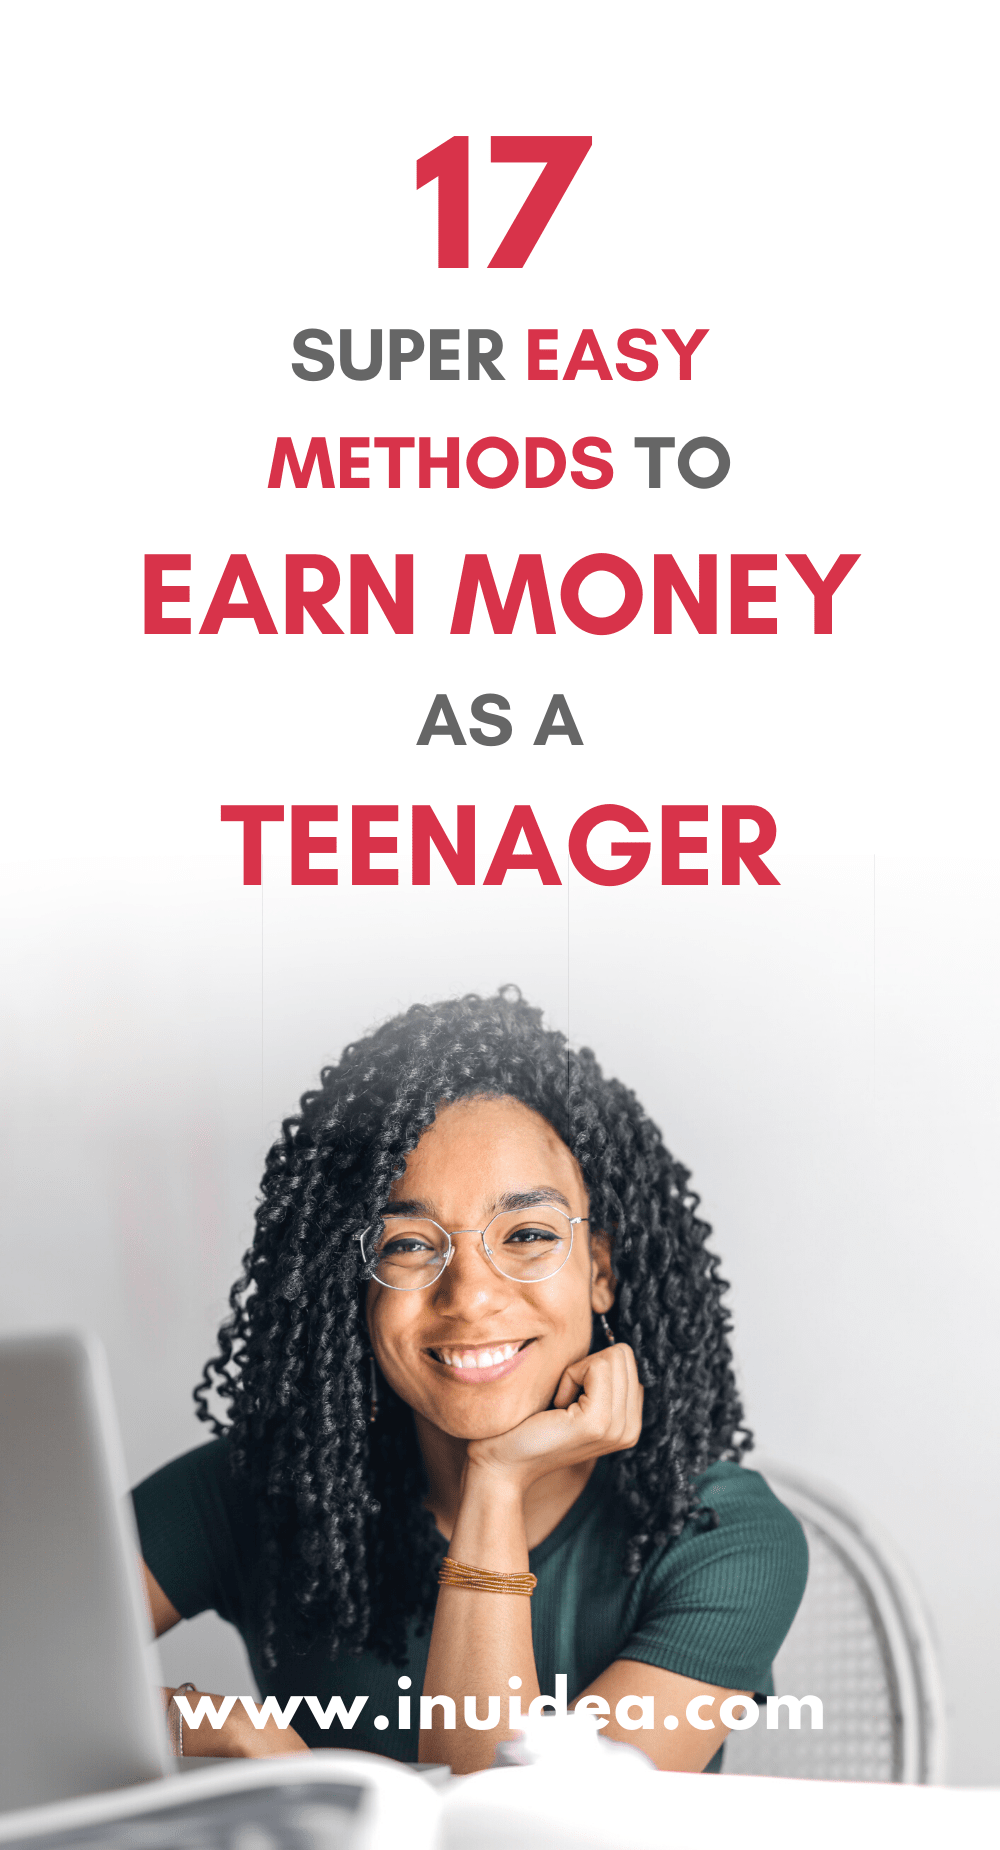 Methods To Earn Money As A Teenager